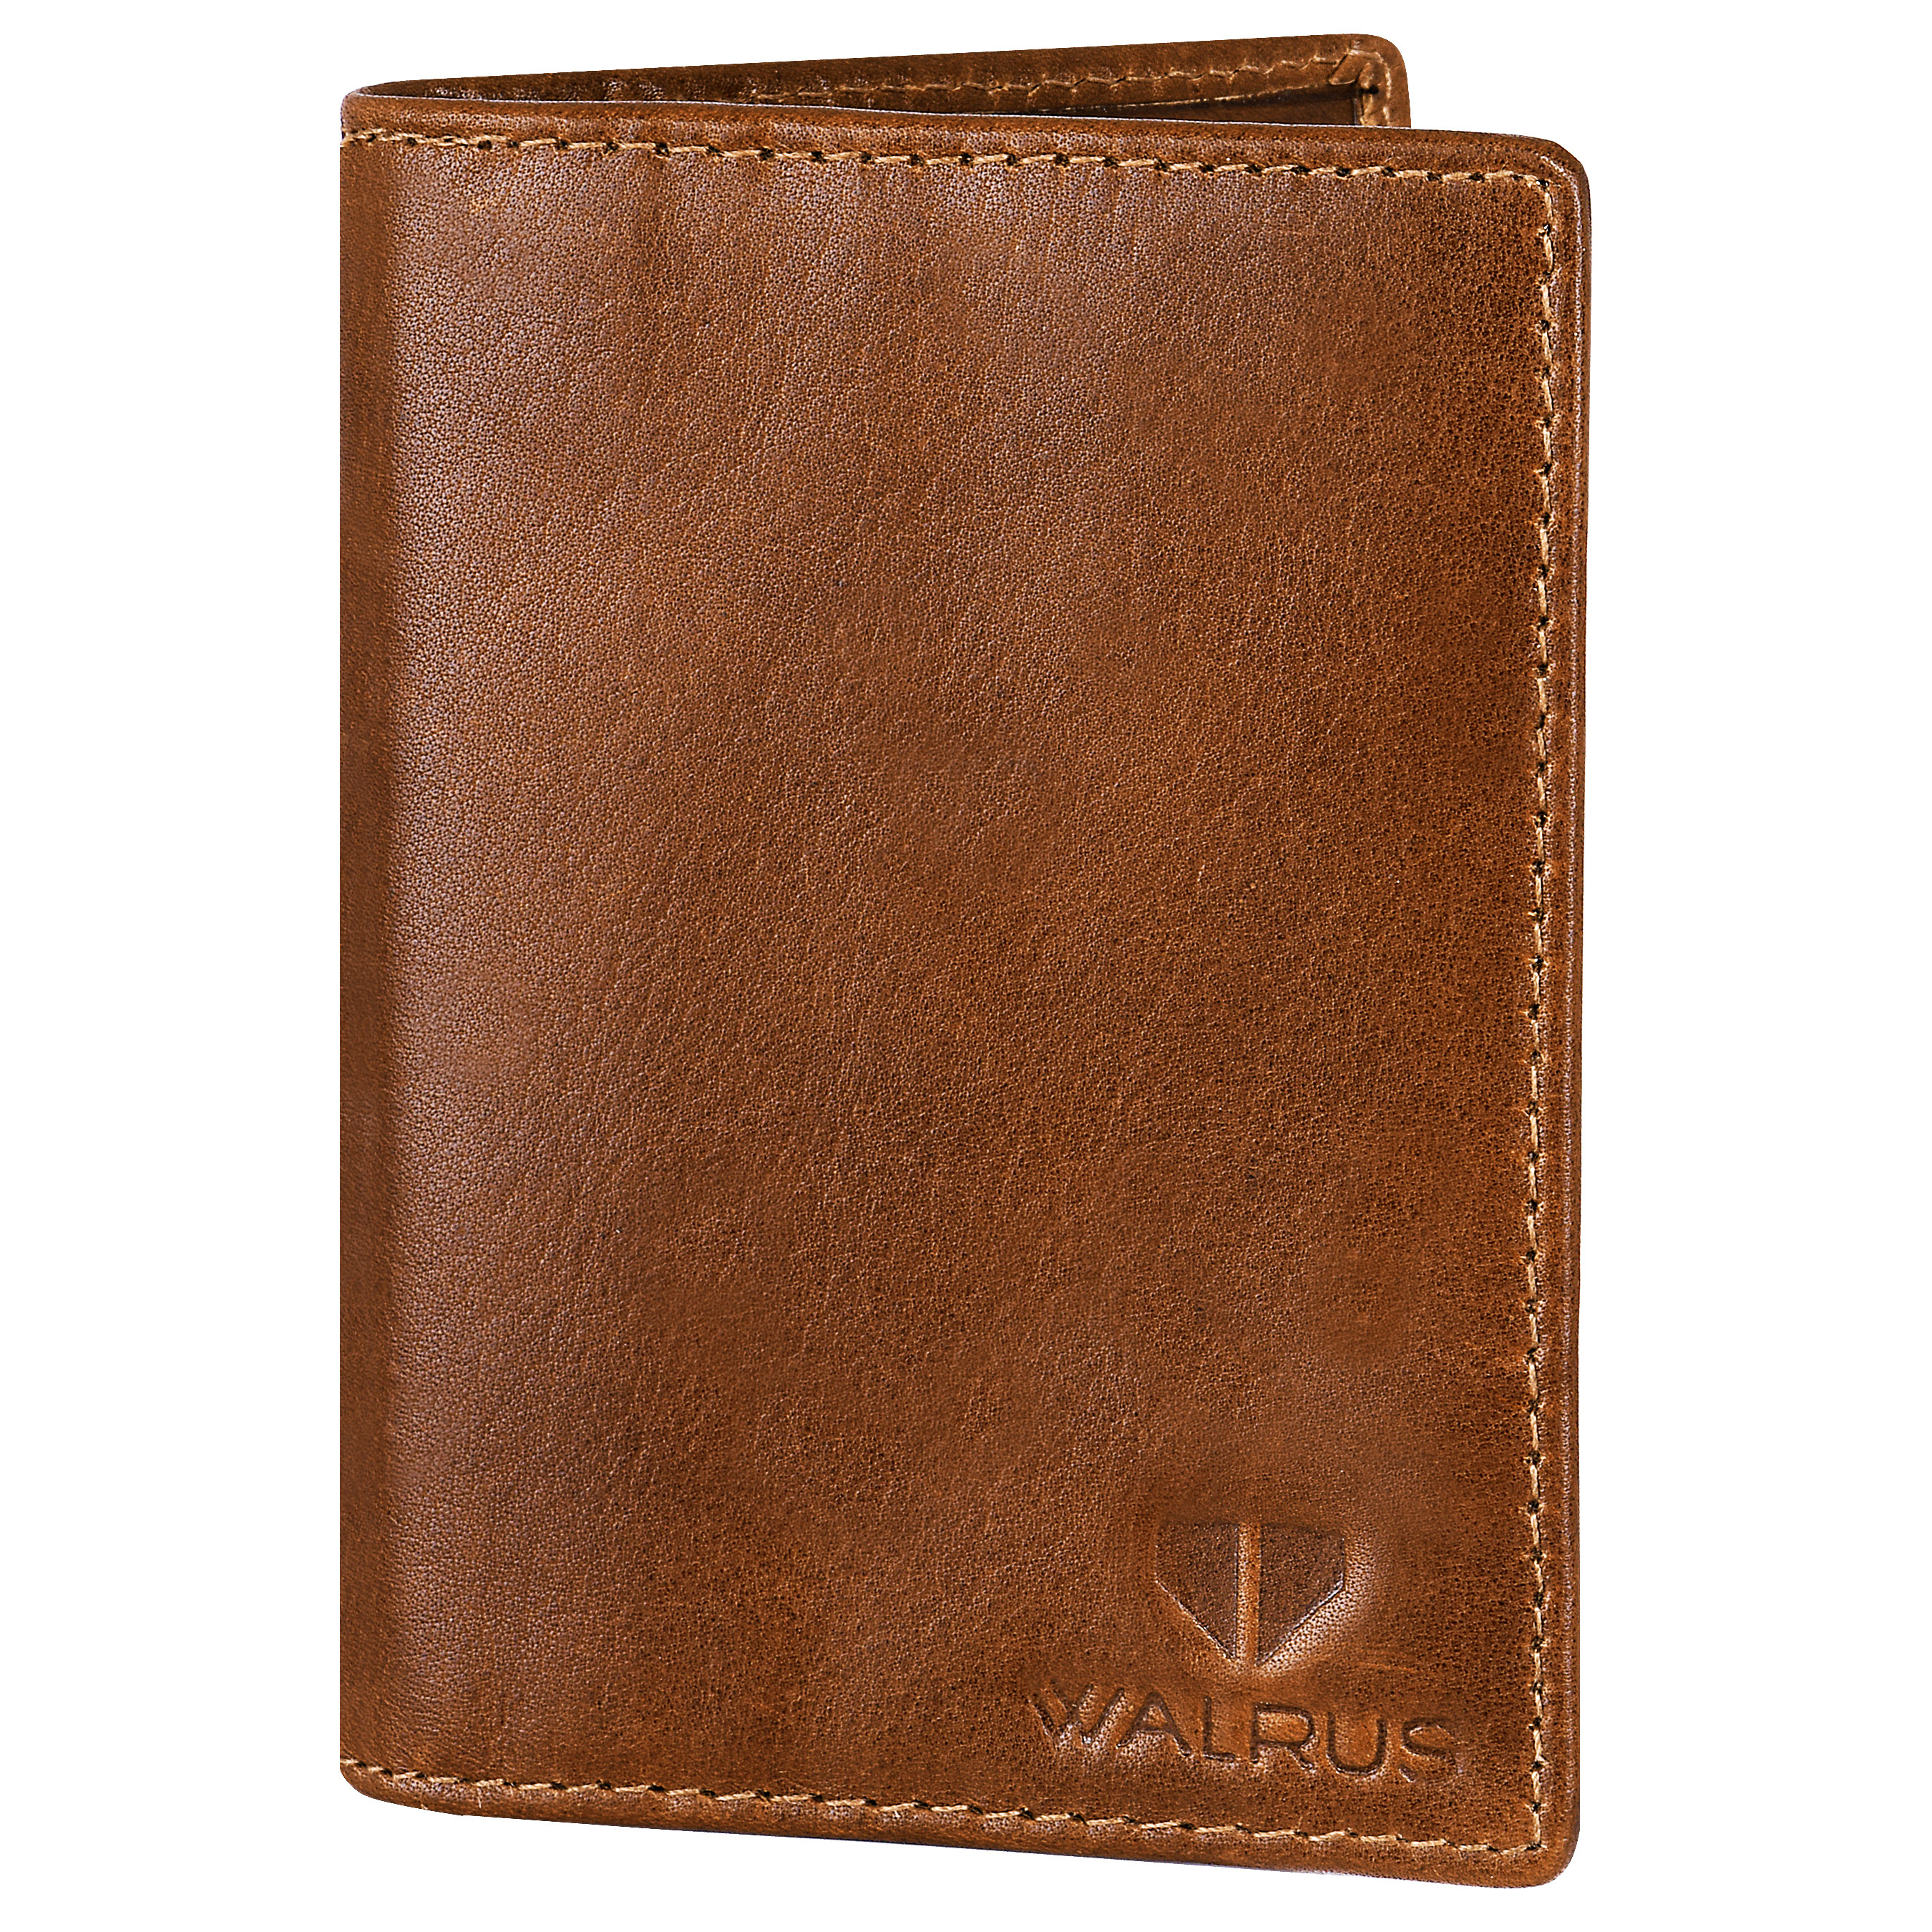 Walrus | Walrus Elite Tan Genuine Leather Card Holder With RFID Protection.